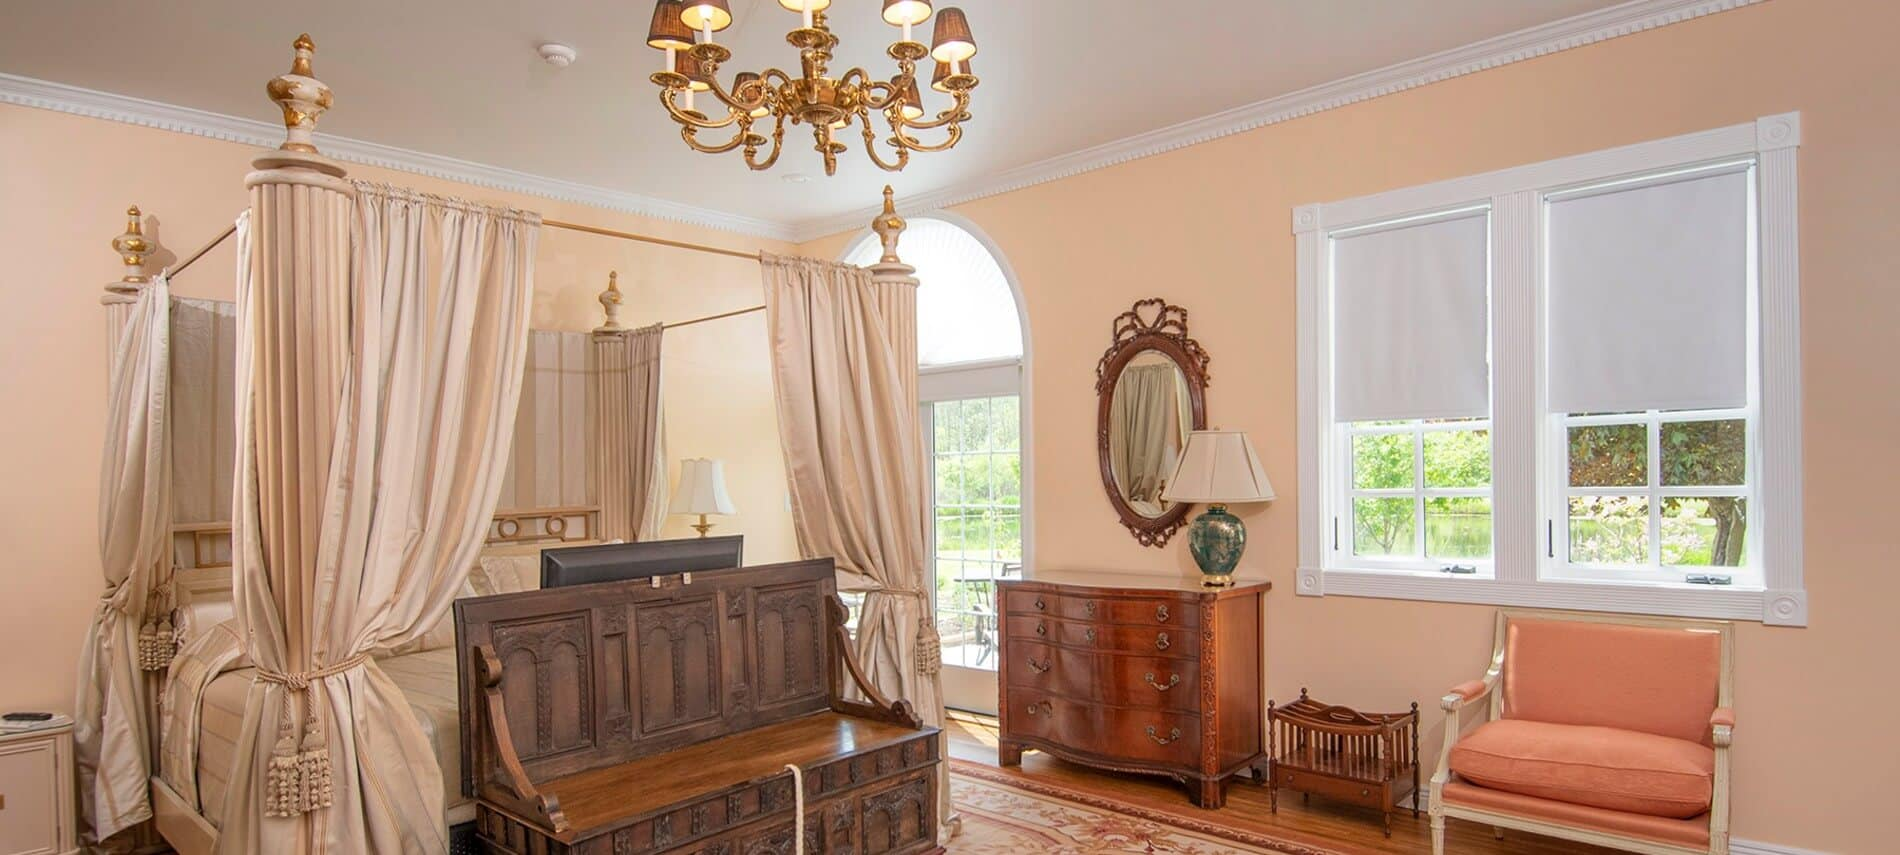 Large and light-filled bedroom with a canopy bed with ivory hangings, gold chandelier and antique dresser.